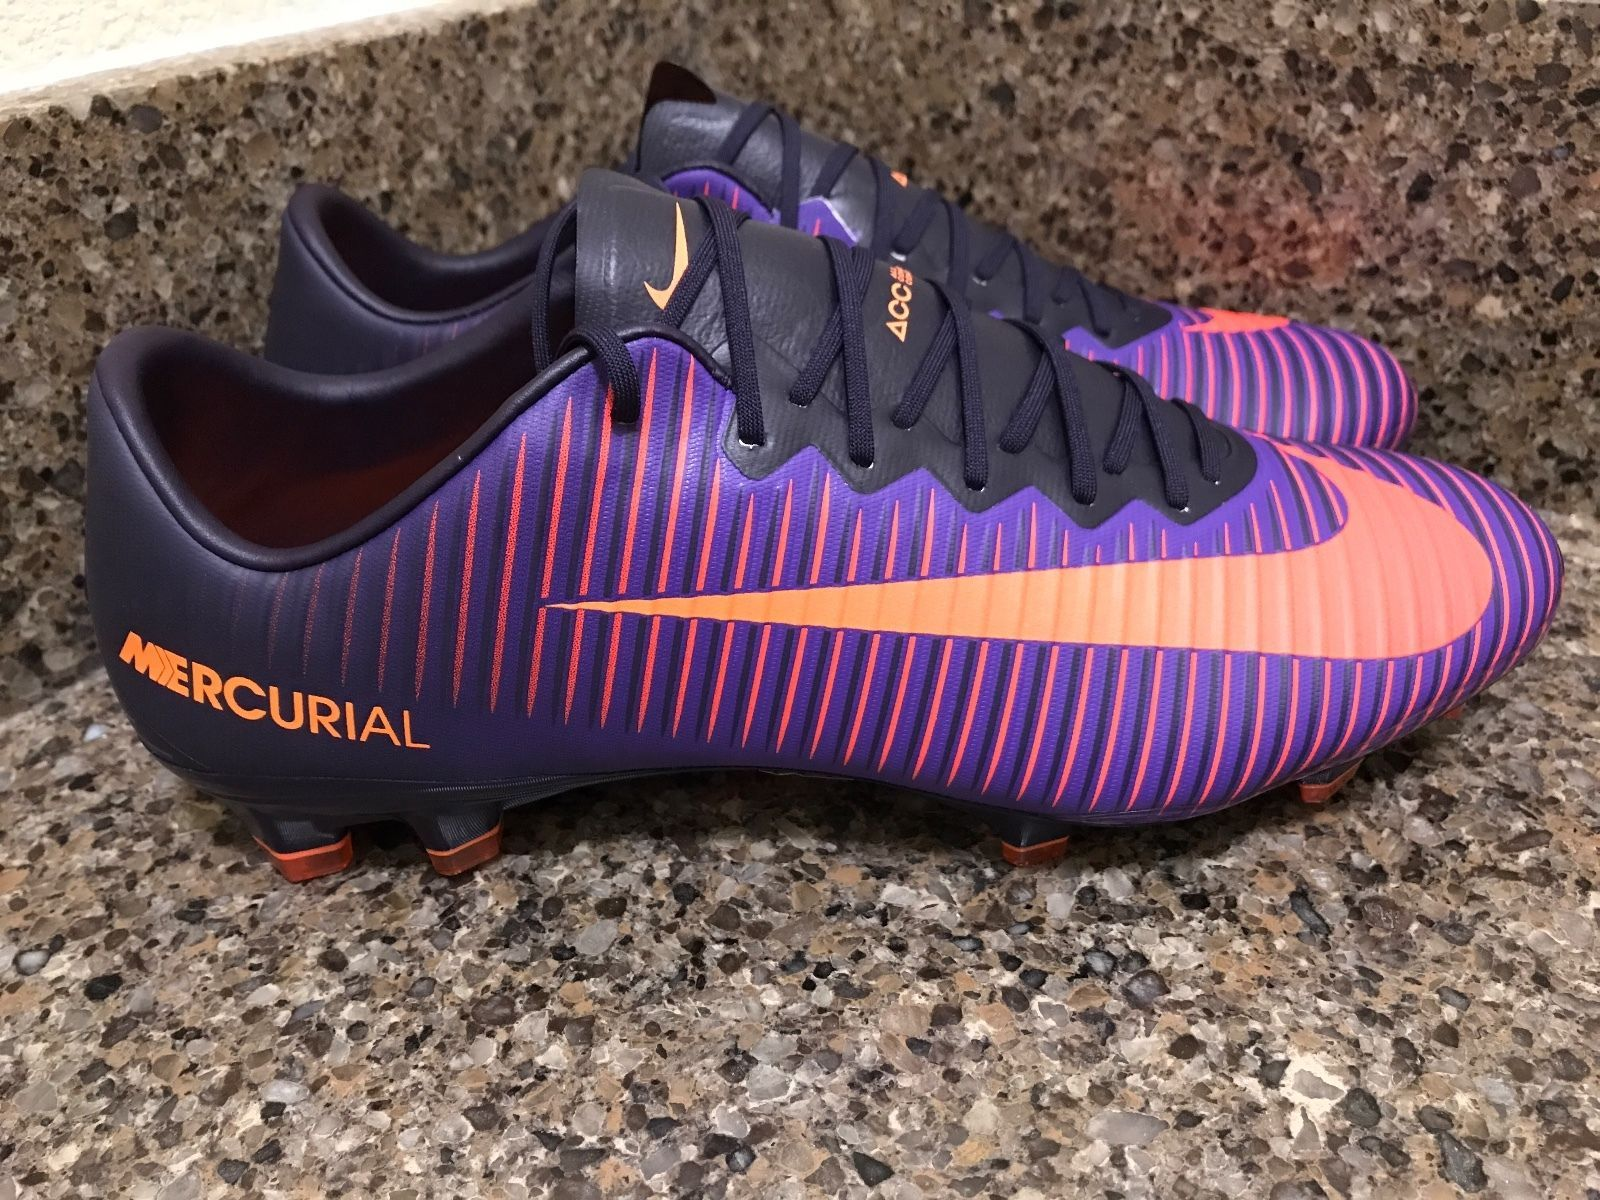 Lighter And Brighter The New Floodlight Pack Mercurial Vapor Xi Worn By Sterling Pulisic Coutinho Modric And Many Soccer Cleats Soccer Boots Soccer Shoes